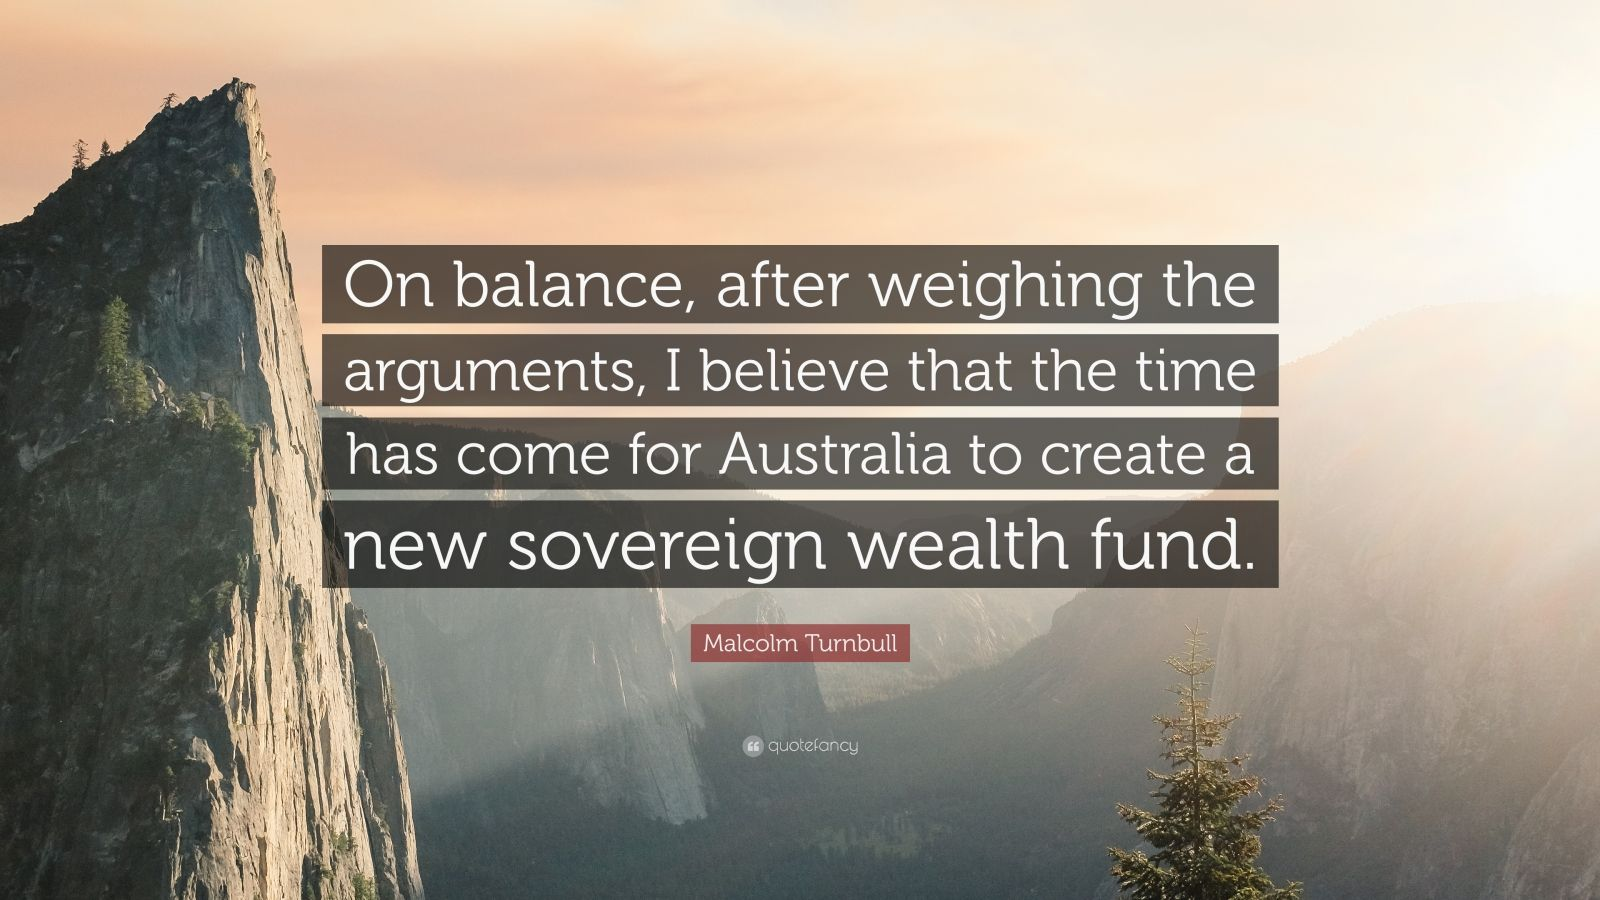 """Malcolm Turnbull Quote: """"On balance, after weighing the arguments, I believe that the time has come for Australia to create a new sovereign wealth fund."""""""